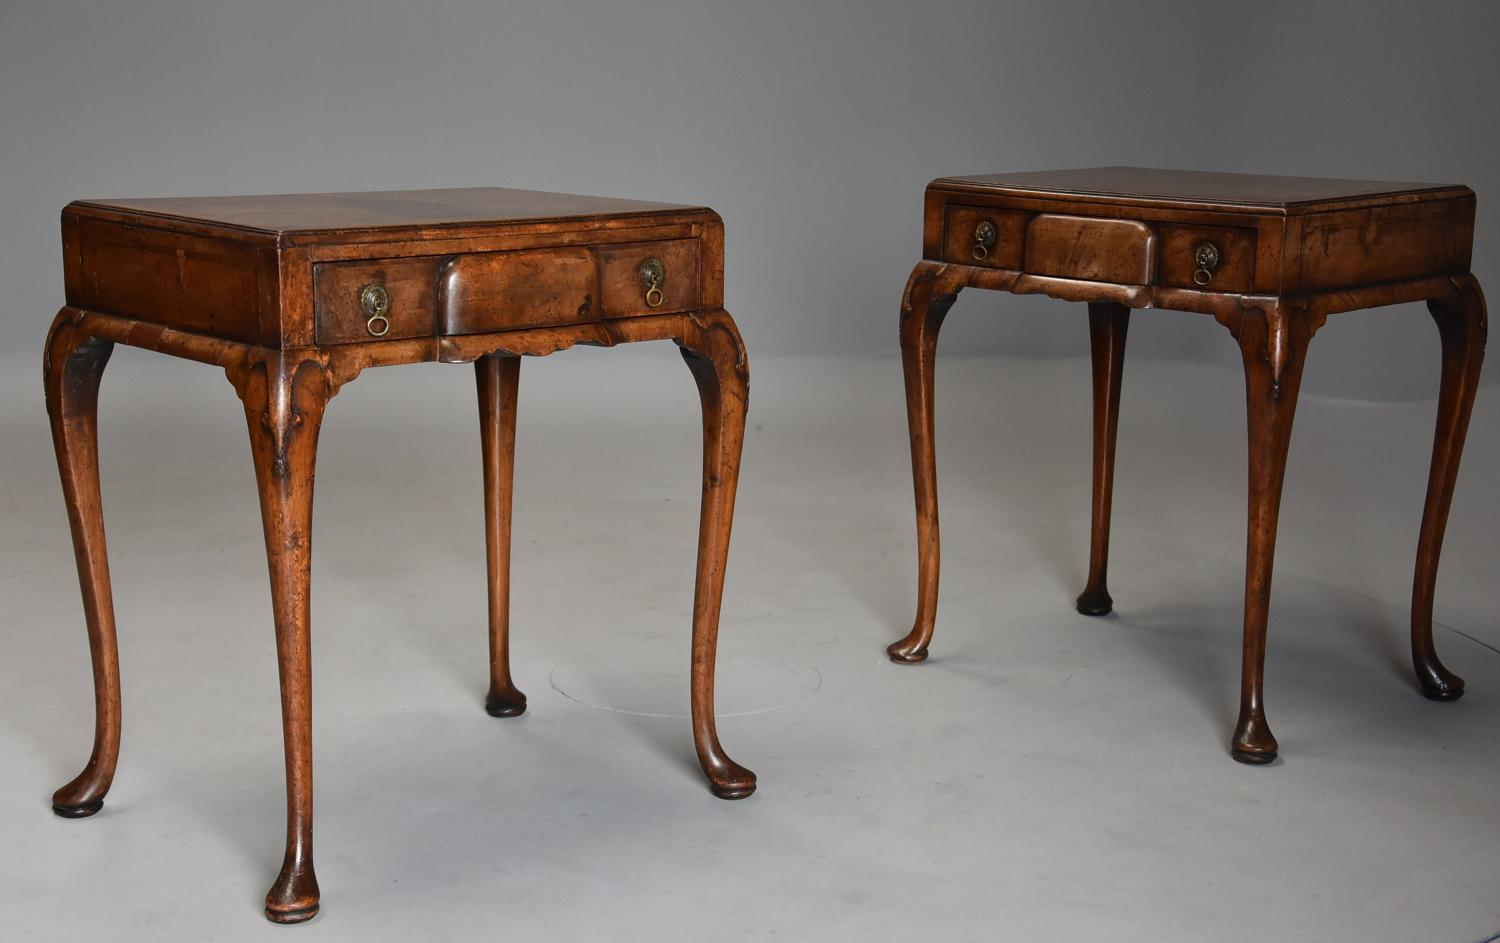 Pair of early 20th century Queen Anne style freestanding walnut tables